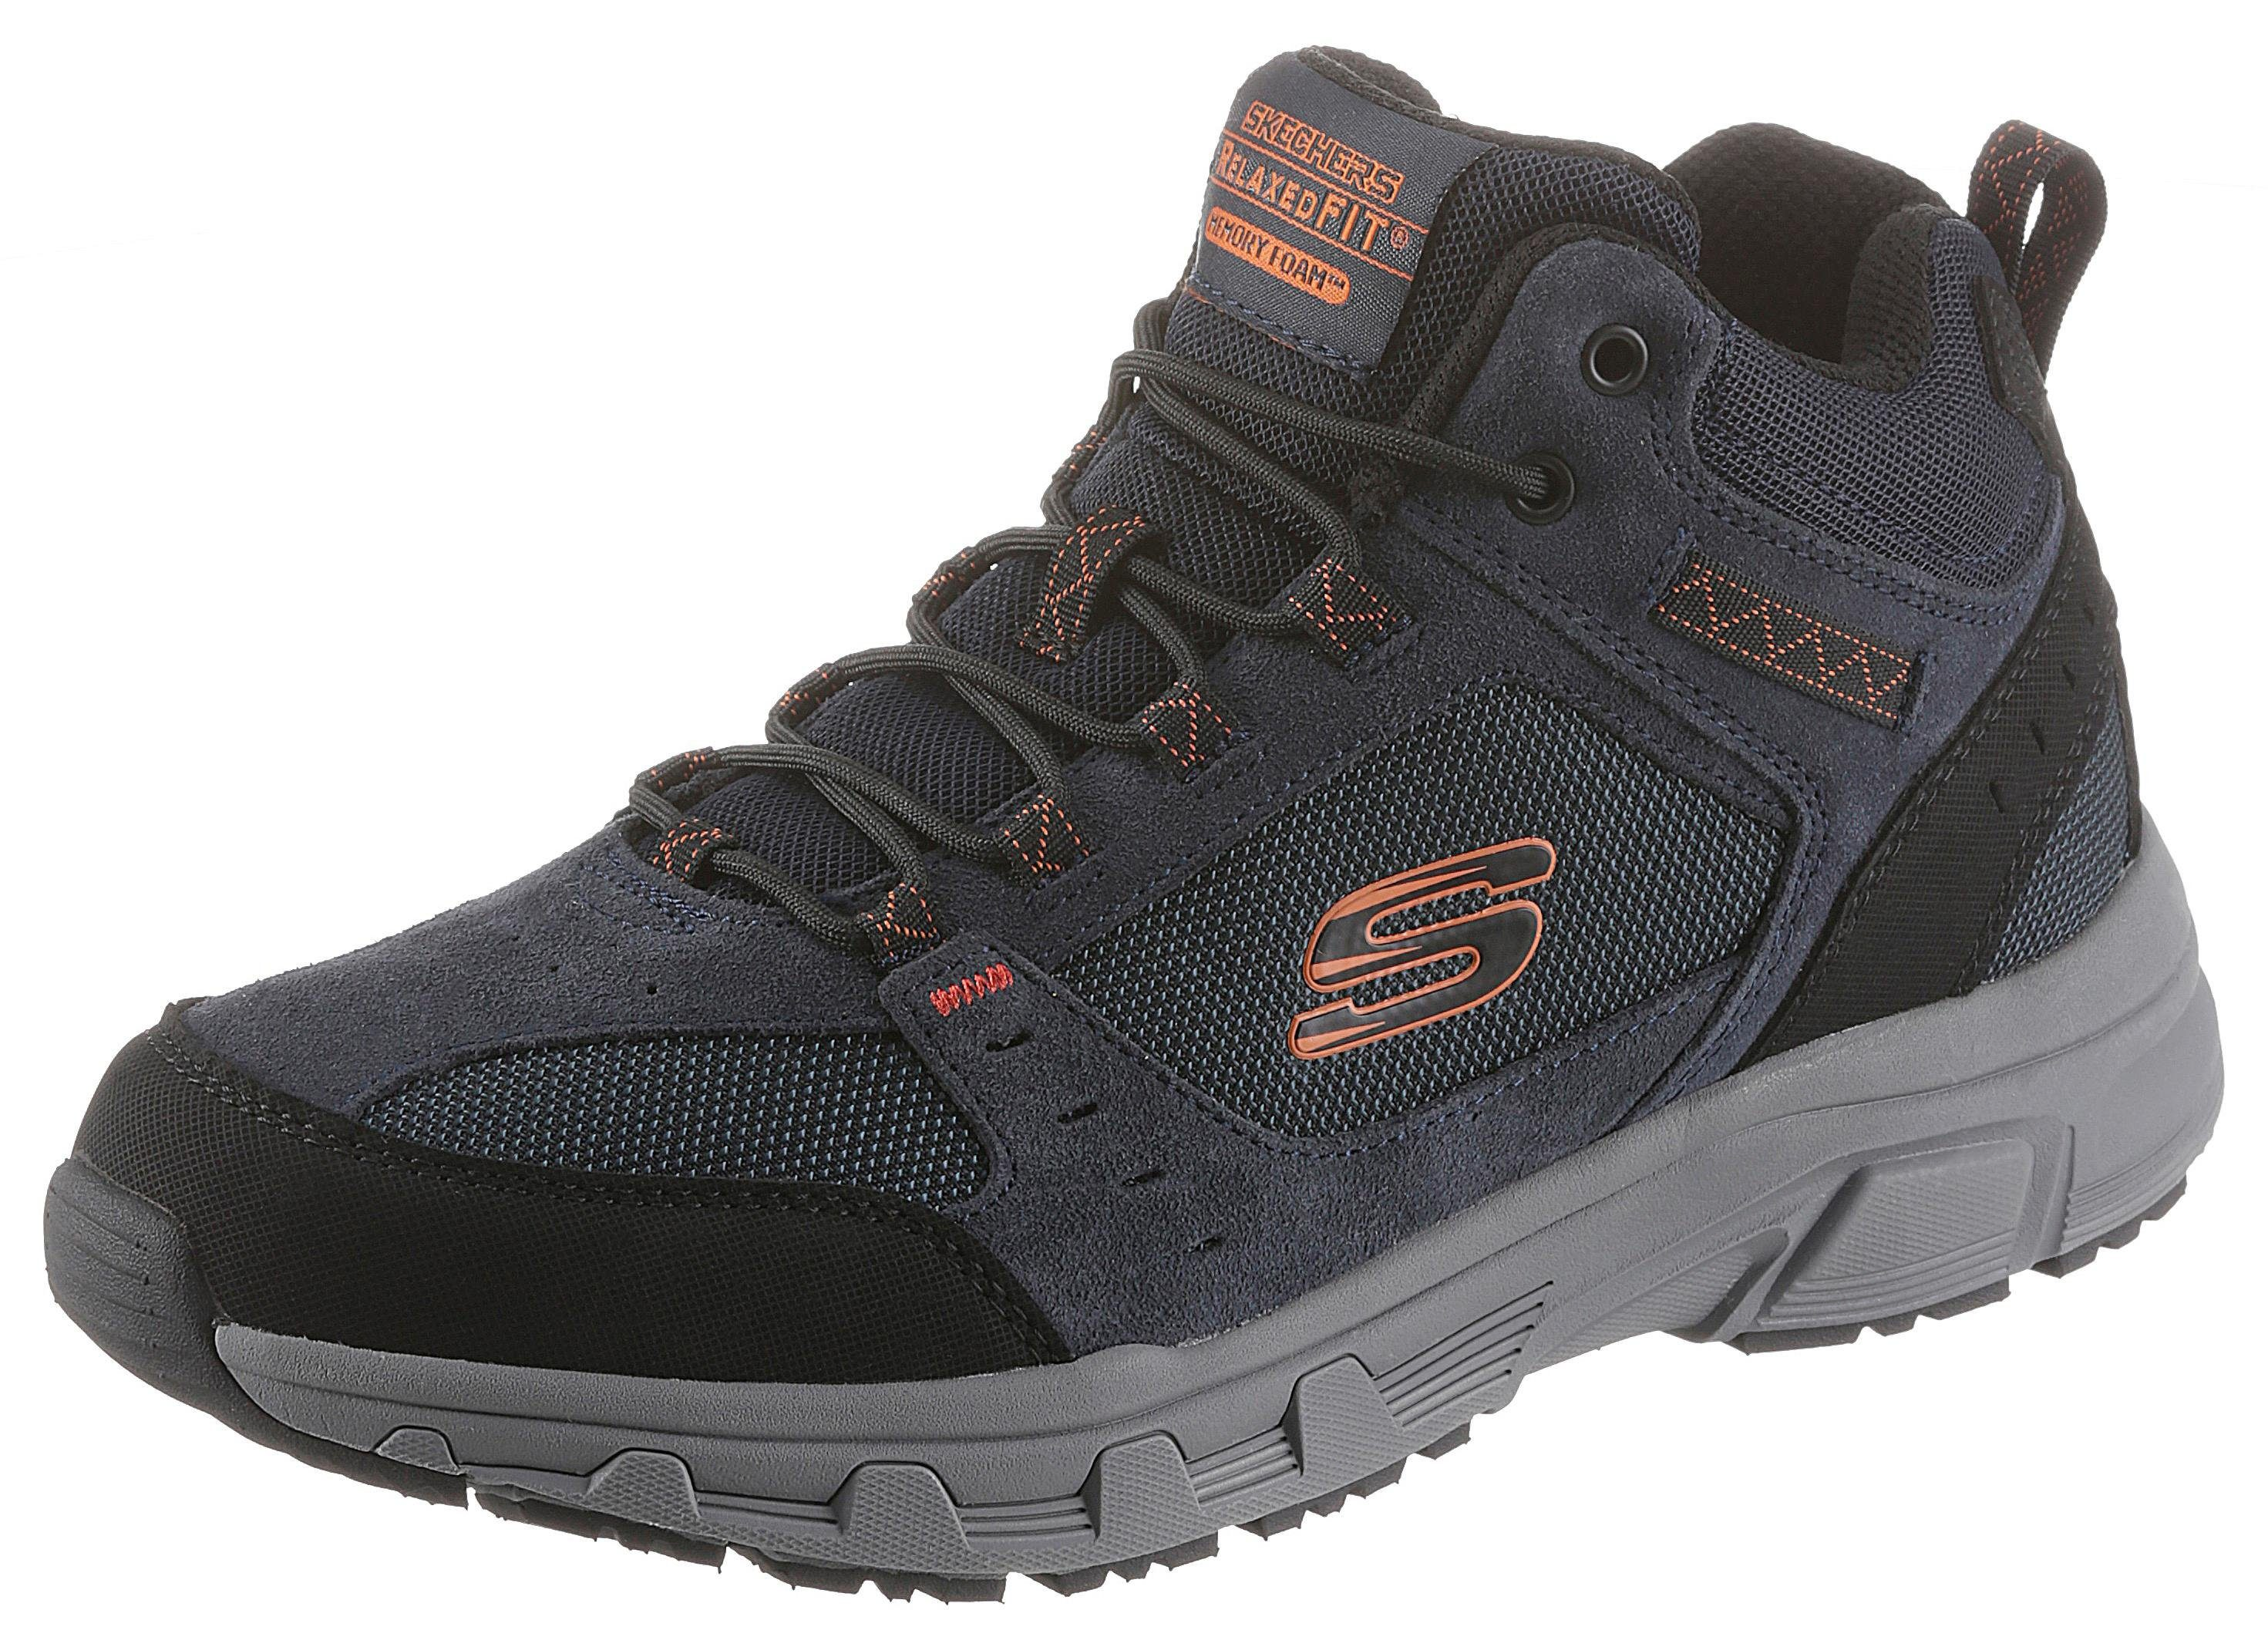 Skechers »Oak Canyon Ironhide« Sneaker mit Relaxed Fit Funktion online kaufen   OTTO